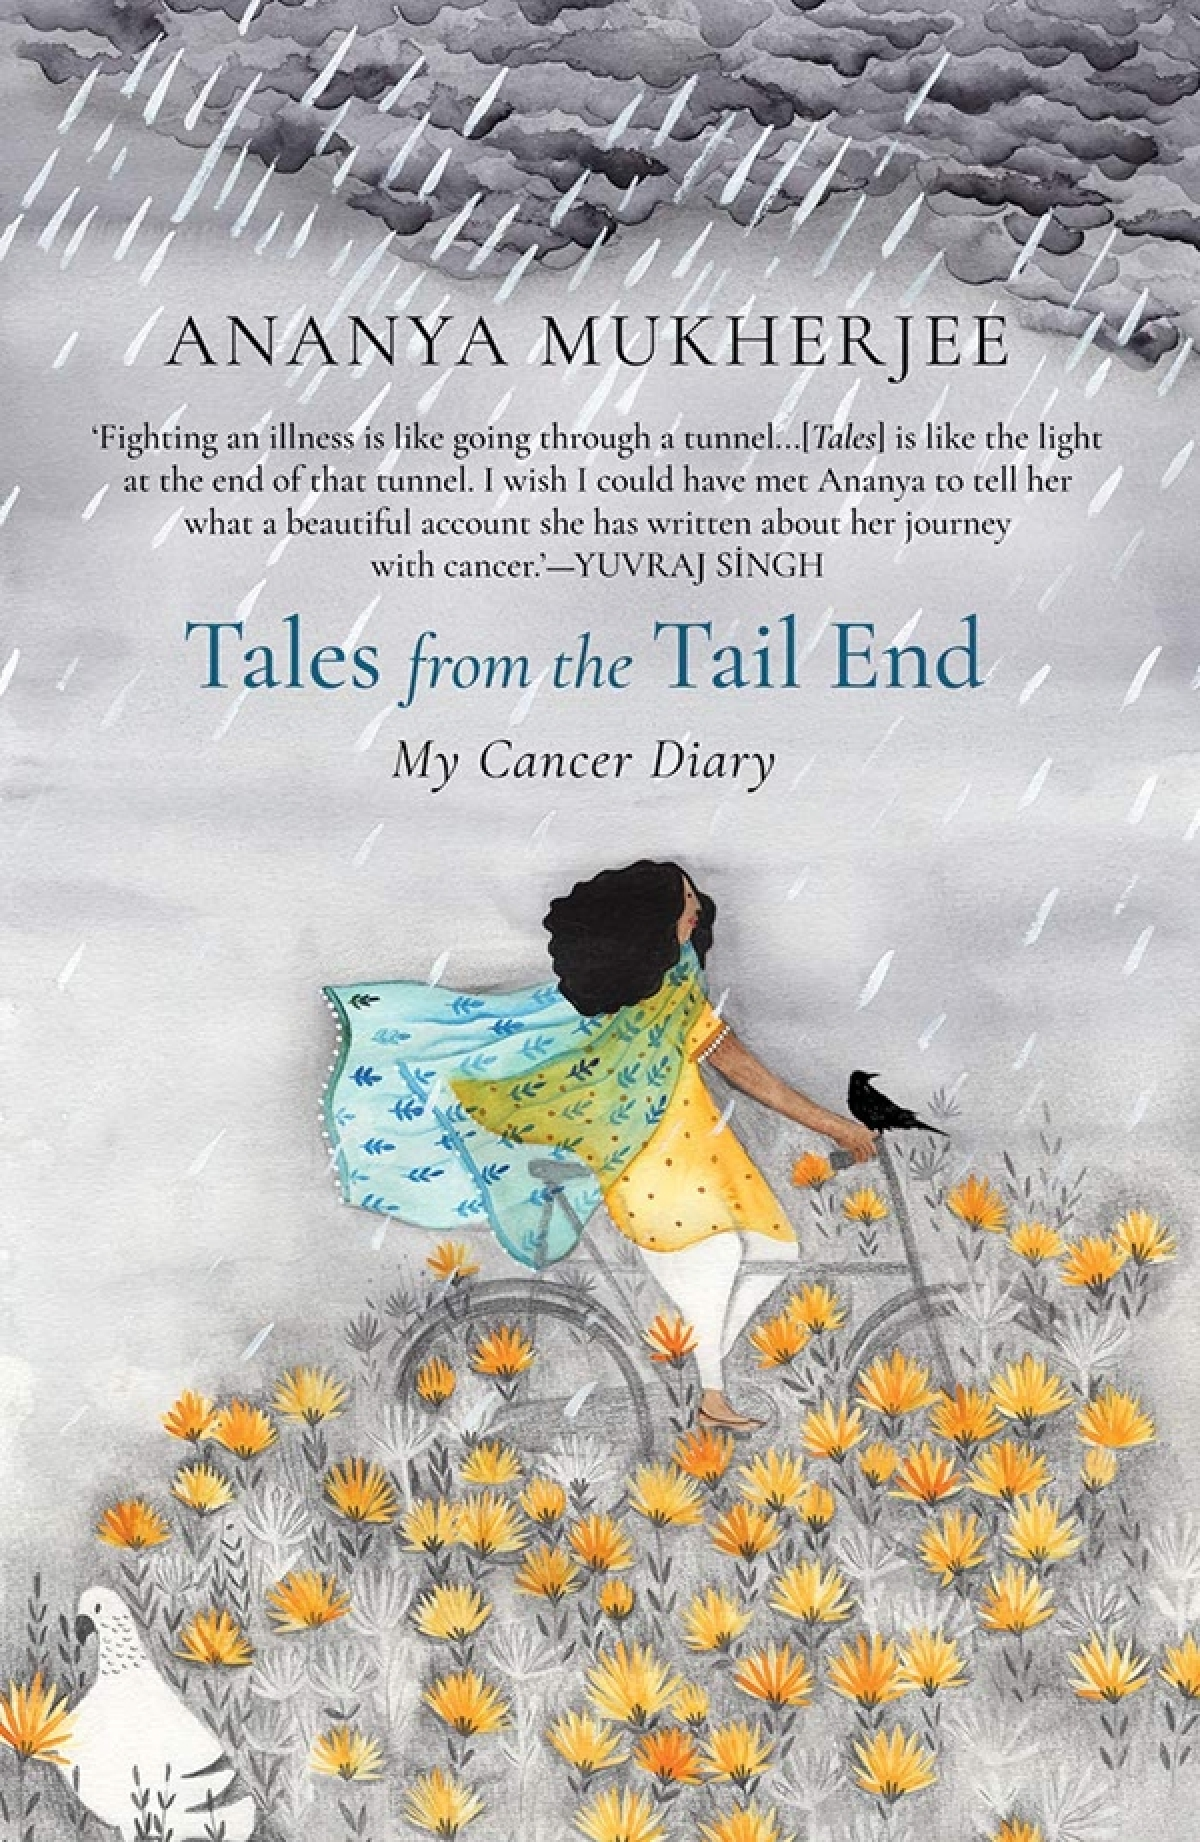 Book Review: More than battling cancer